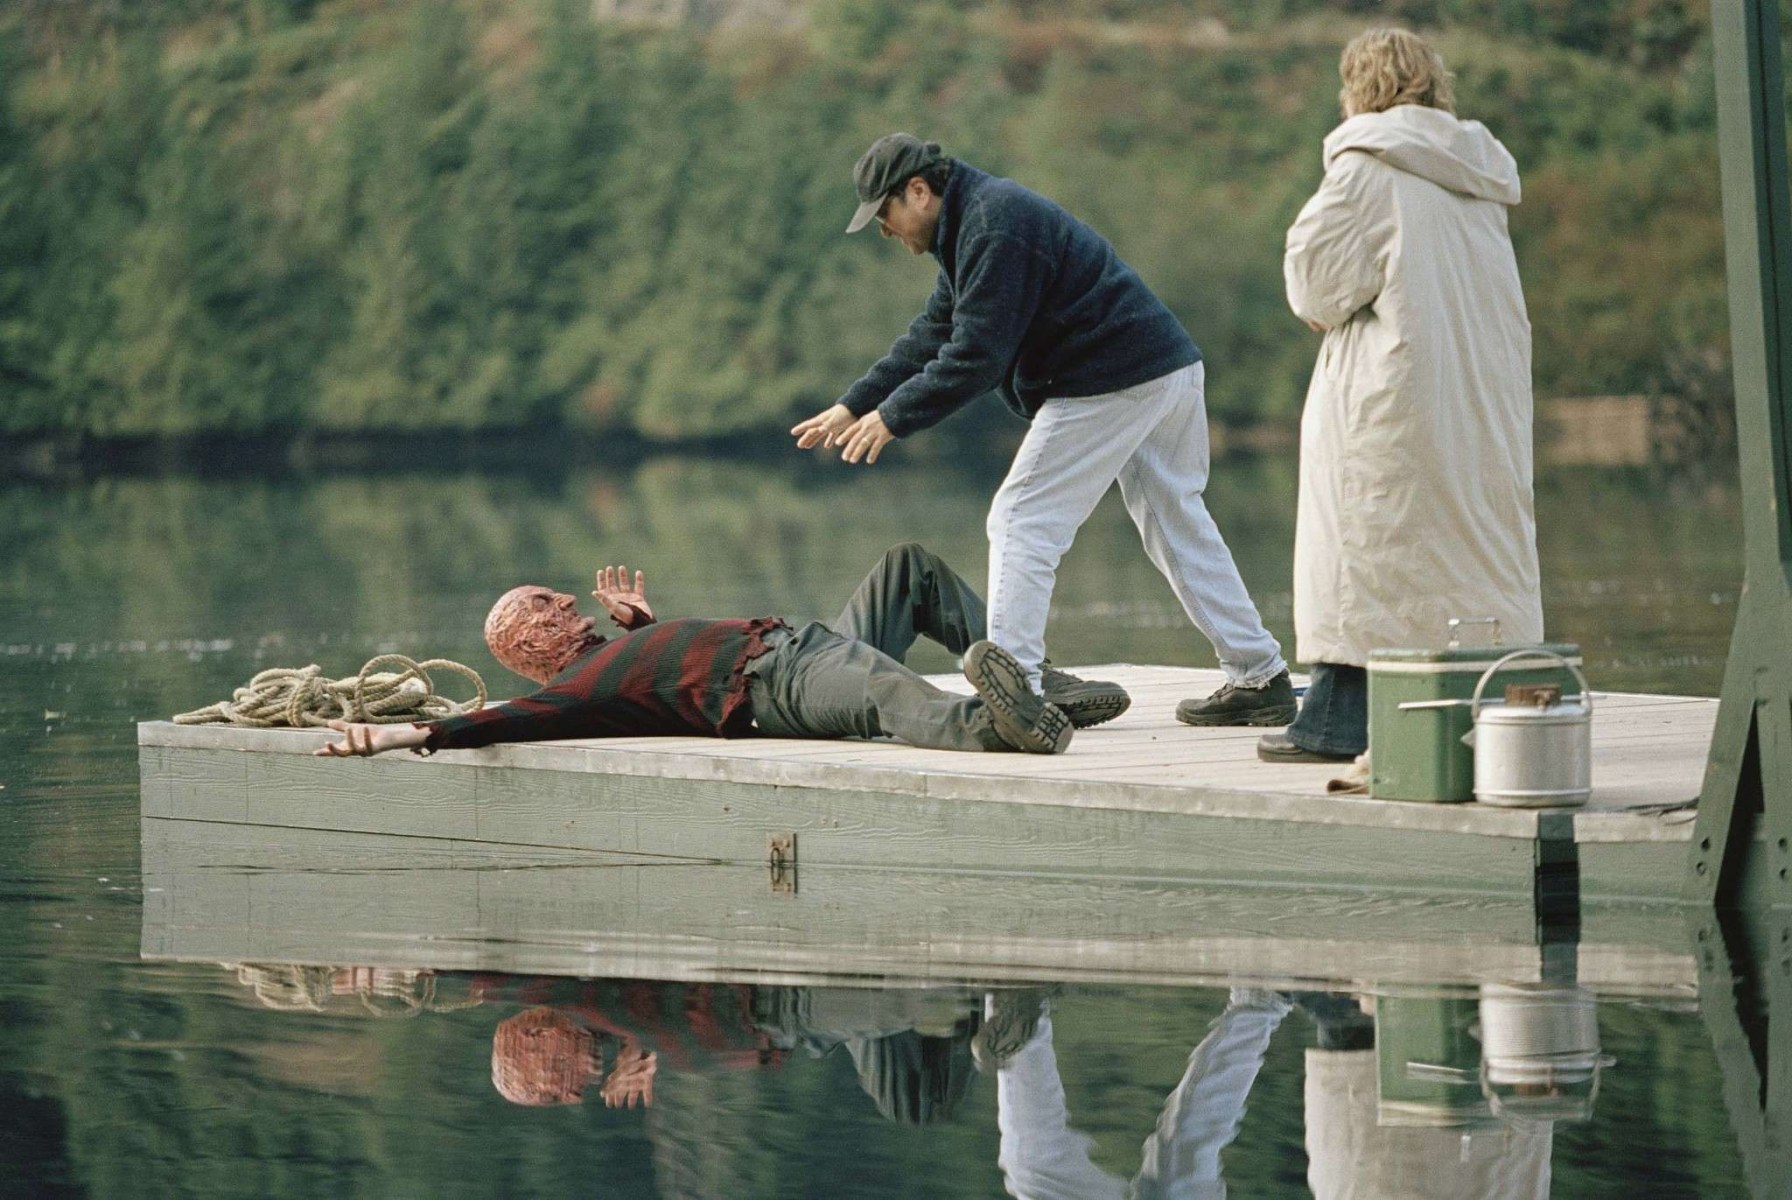 Freddy vs. Jason Behind the Scenes Photos & Tech Specs